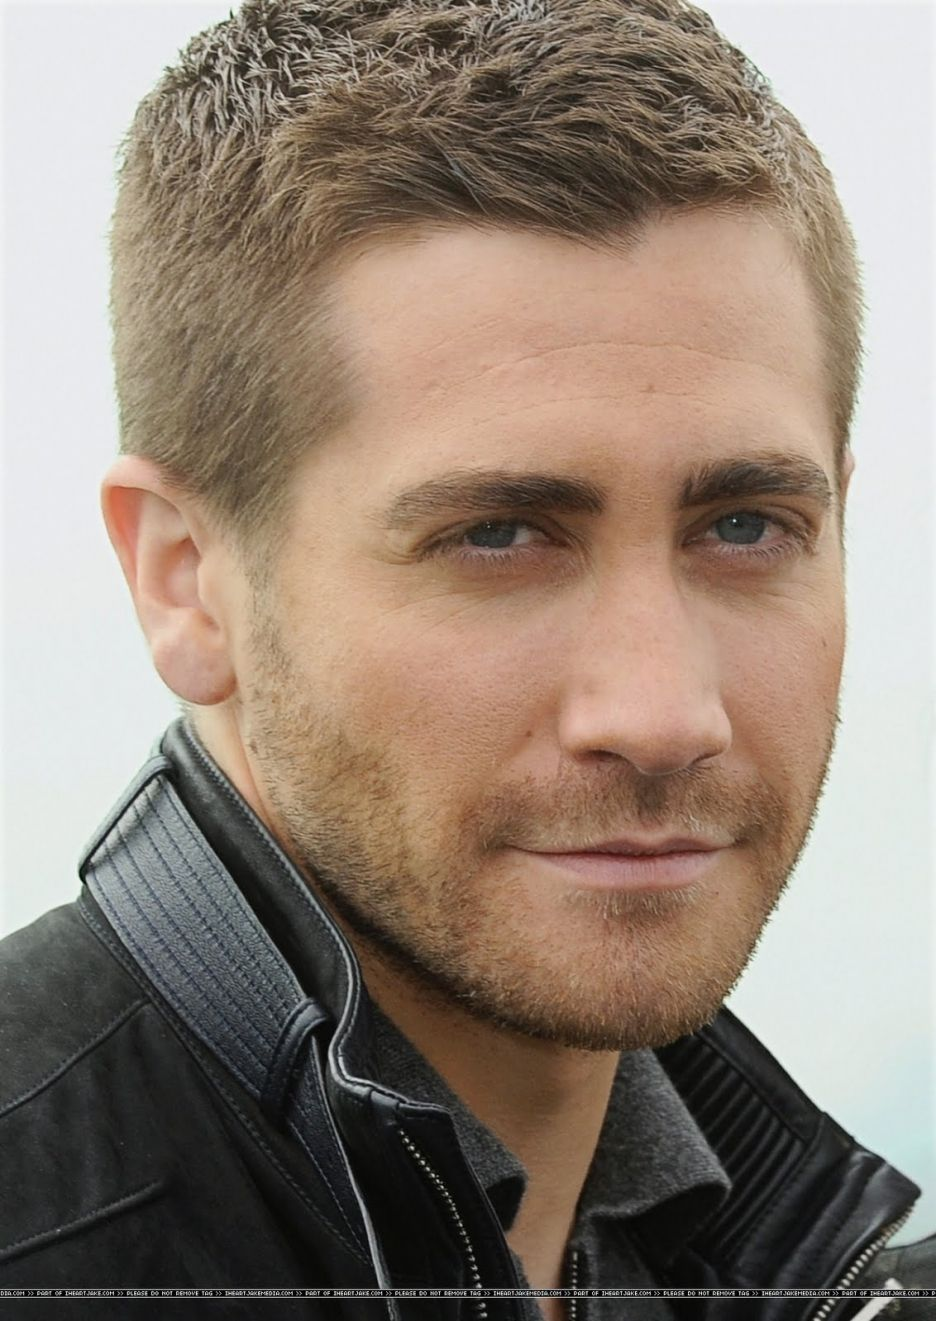 Cute and a great actor who is not adverse to doing a variety